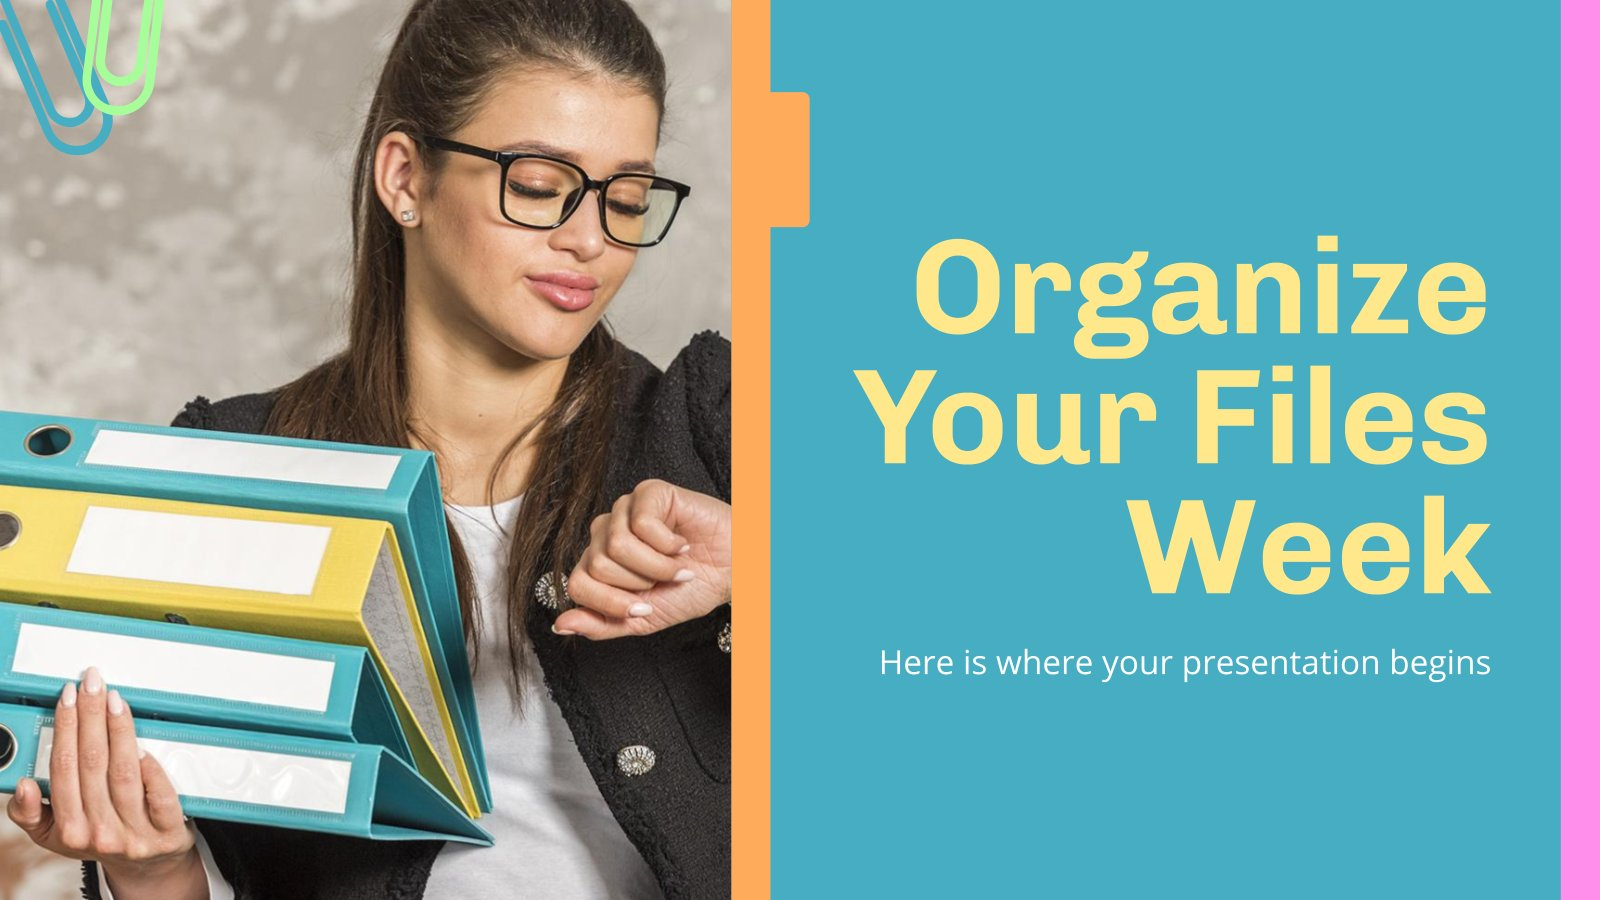 Organize Your Files Week presentation template